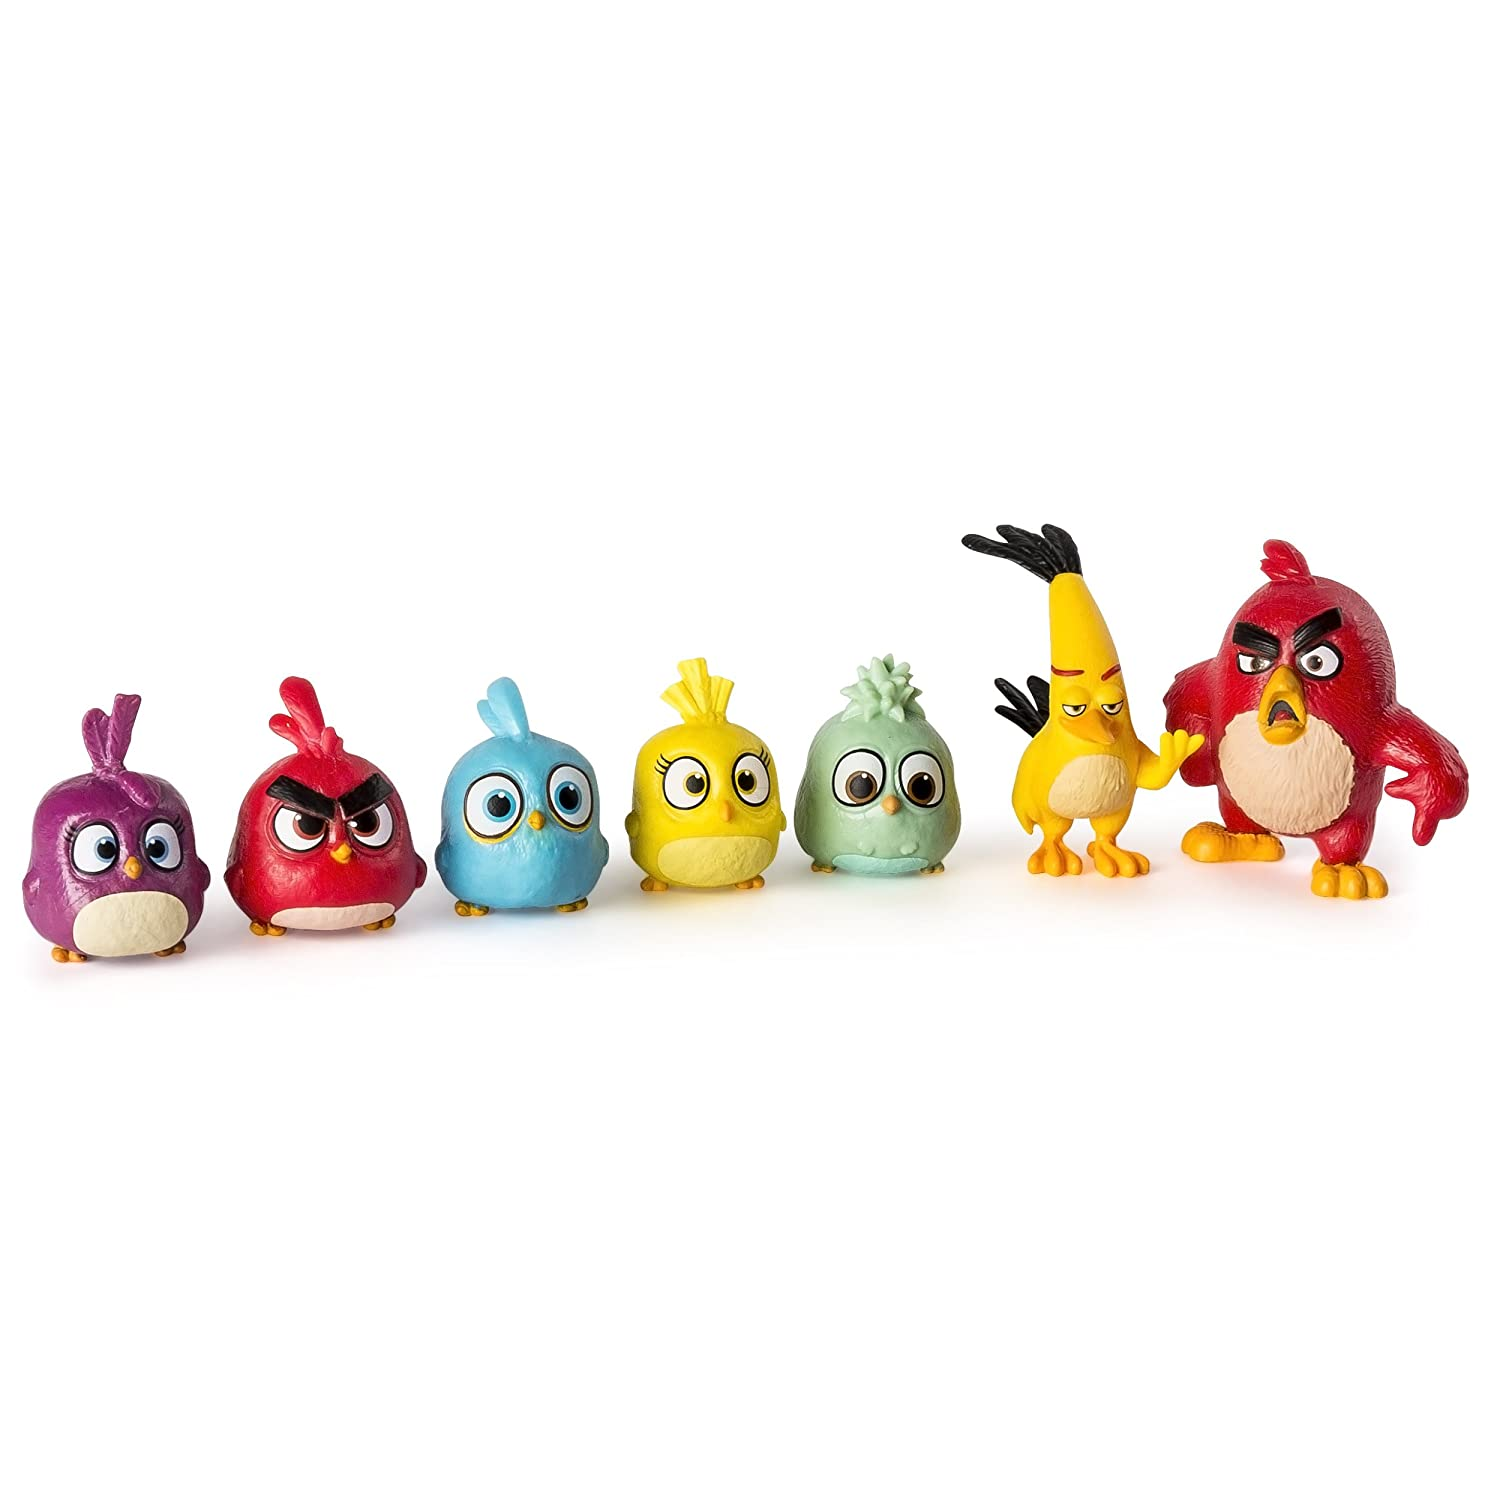 Angry Birds plastic figure Terence Action Figures